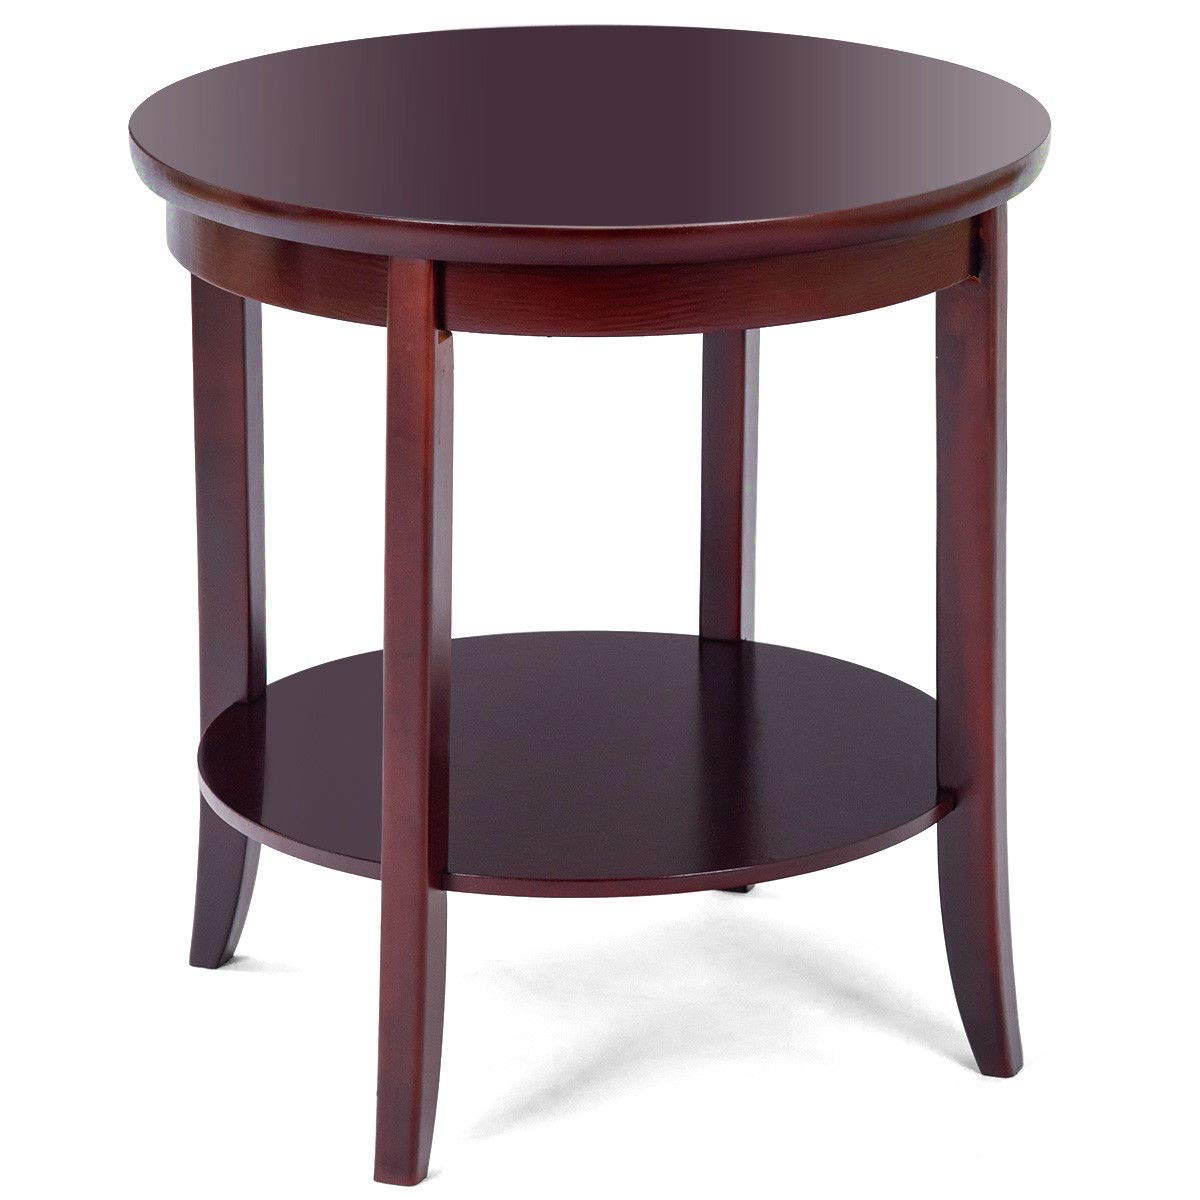 Chairside end table wood round with storage shelf dark cherry sofa couch side tv snack accent table tray furniture for dorm living room home office e book